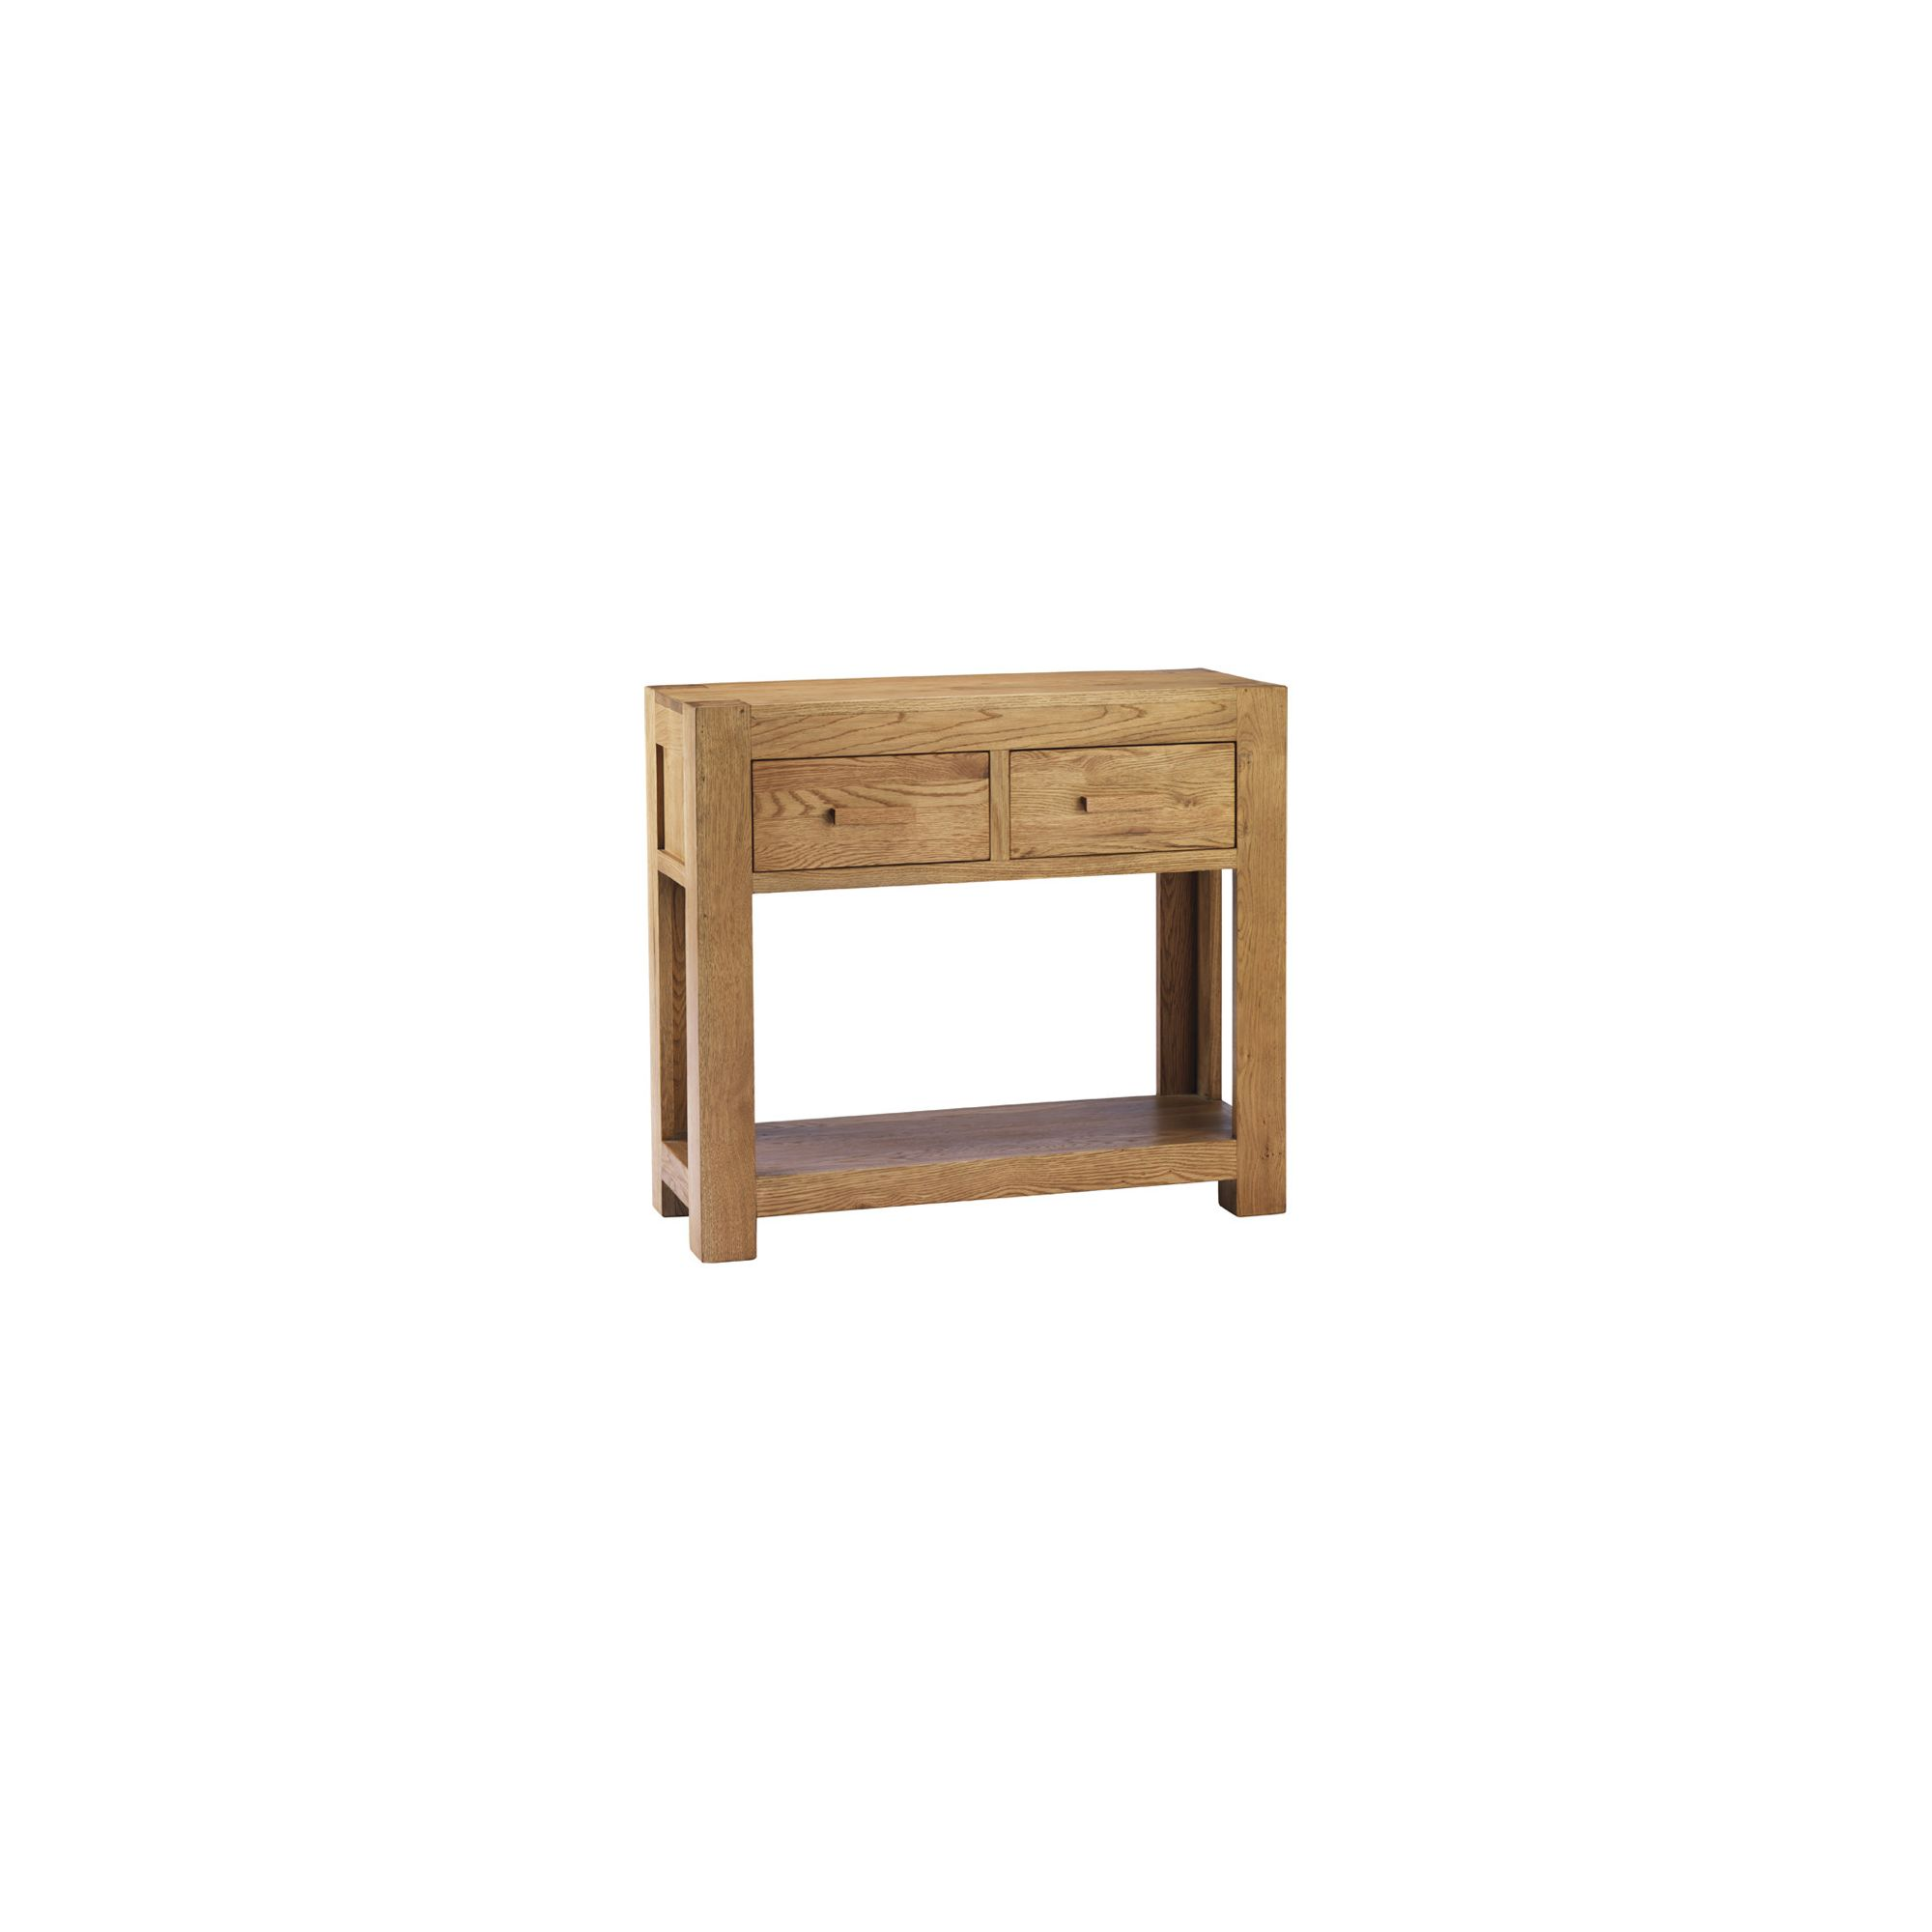 Thorndon Block Console Table in Natural Matured Oak